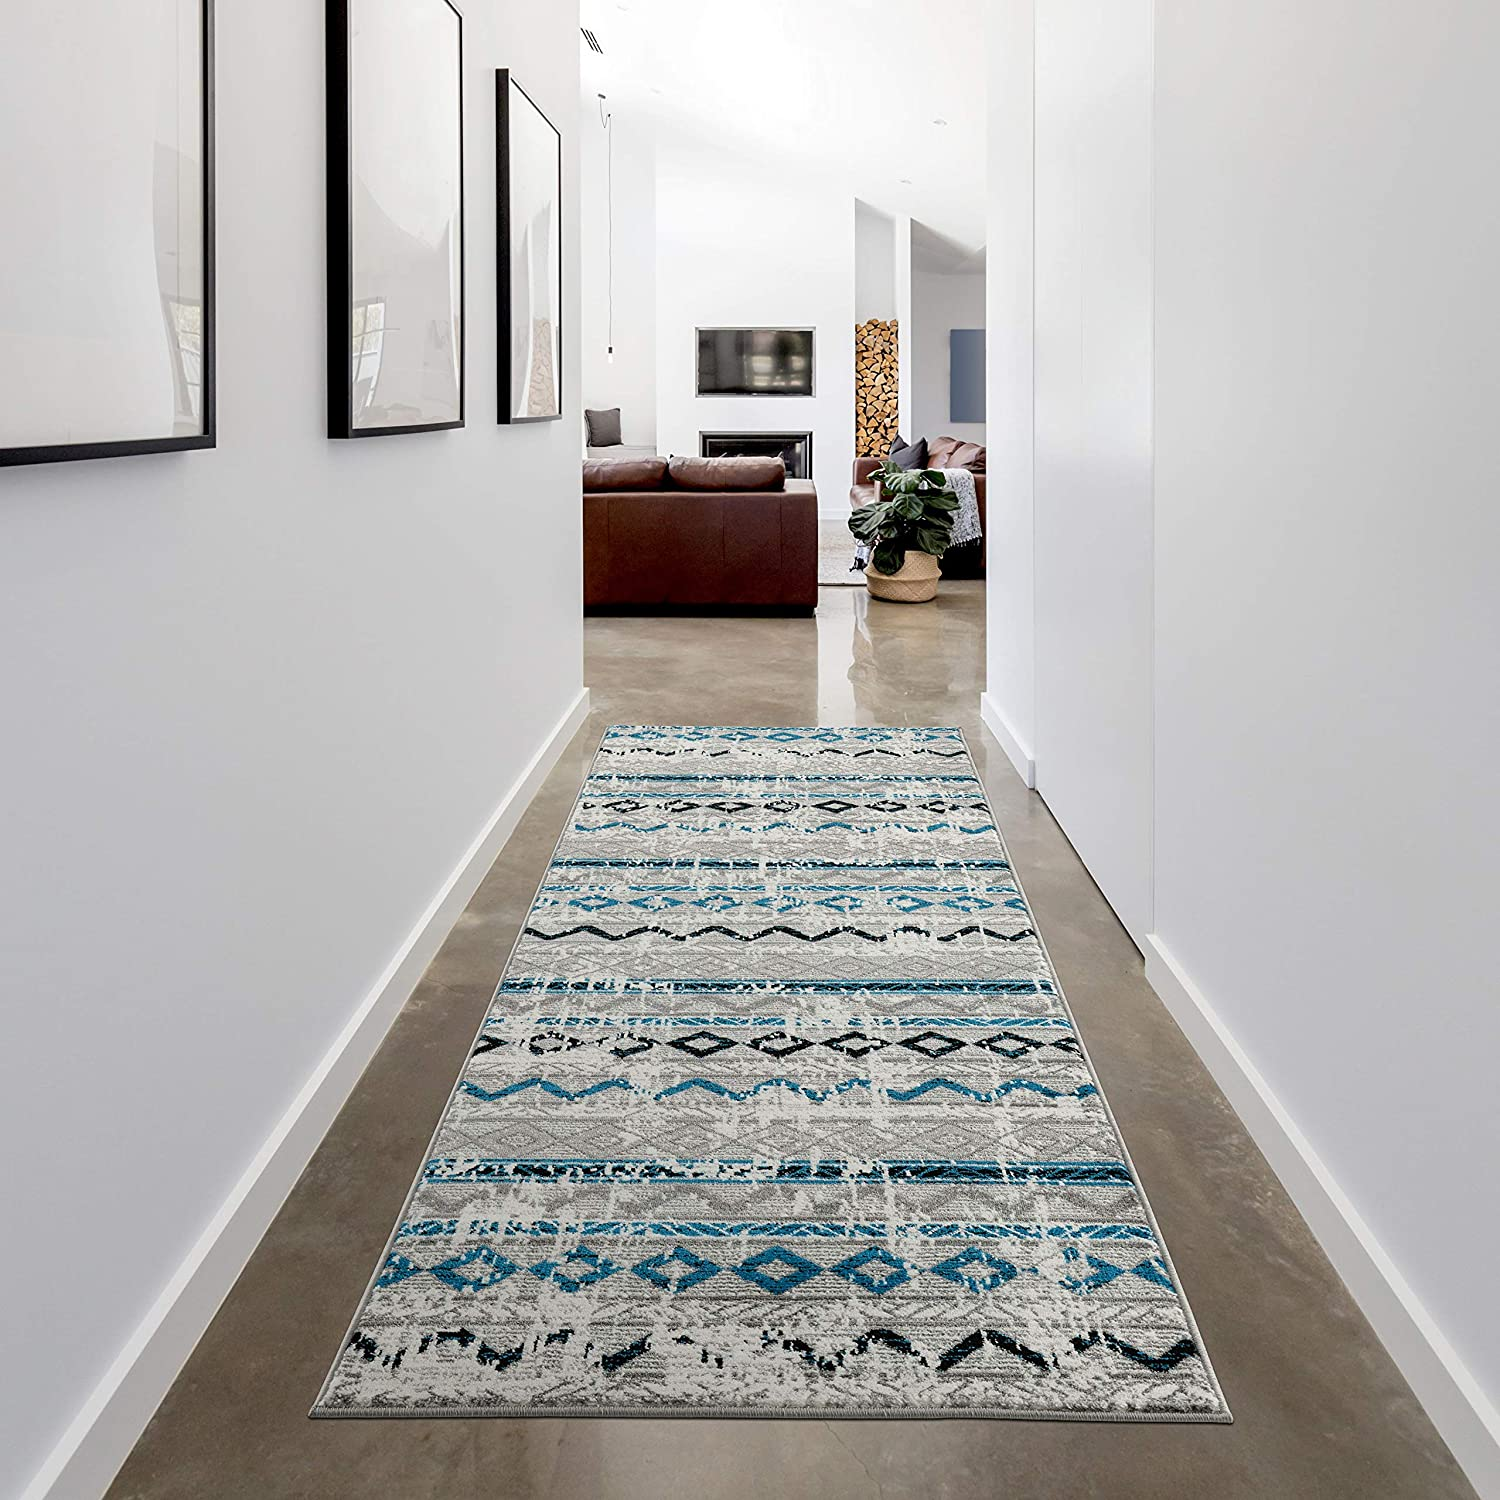 Grey Blue Runner Rug 2.6 x 7.9 by LOOM&WEAVE for Hallways, Entryway, Bed Sides, Kitchen & Bathroom - Instantly Transform Your Modern, Farmhouse or Bohemian Home Décor (BAL)